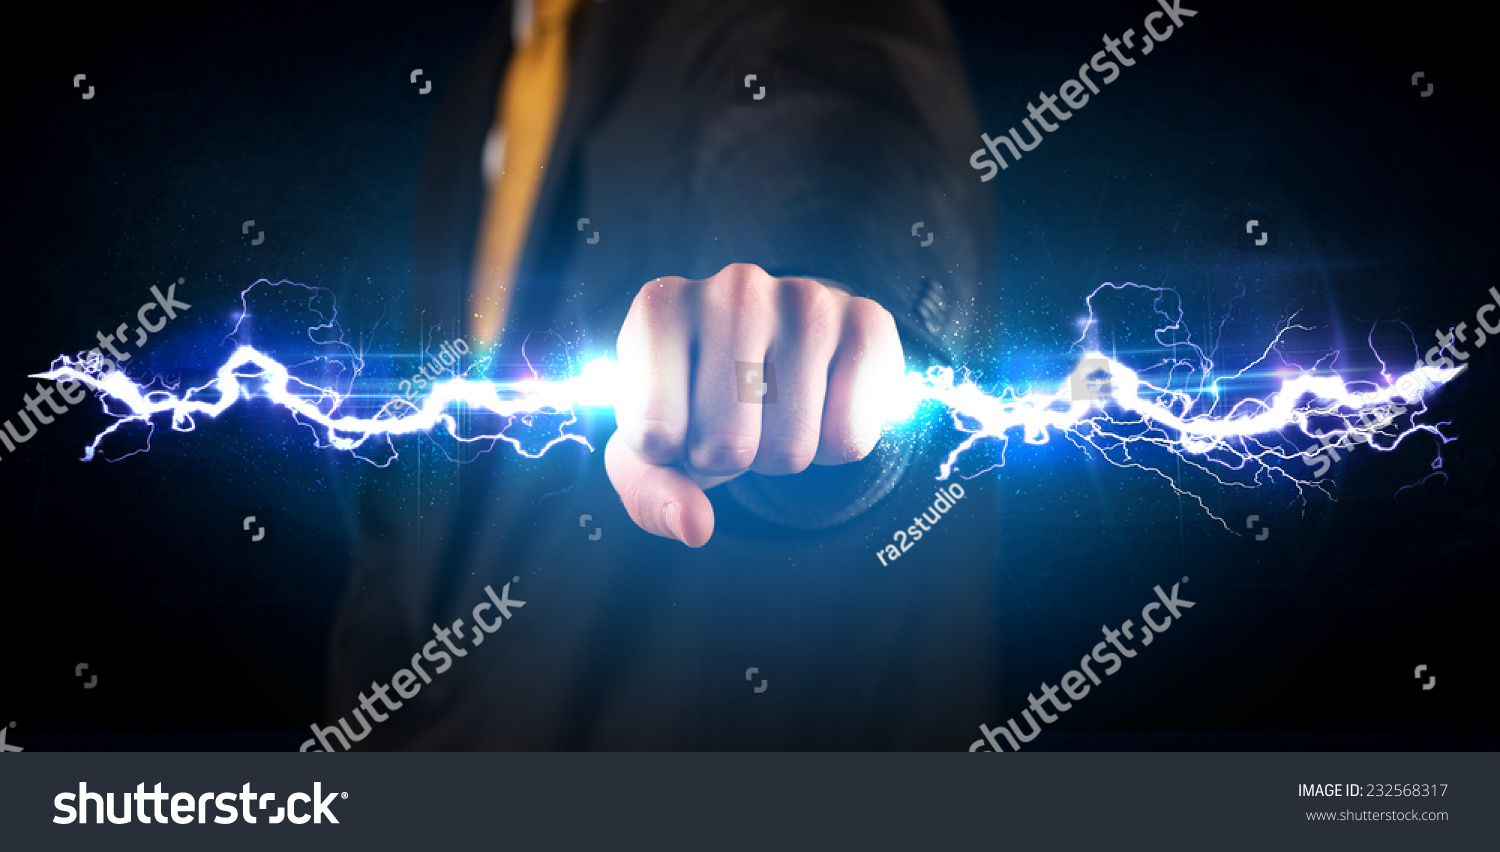 Technology Management Image: Business Man Holding Electricity Light Bolt In His Hands